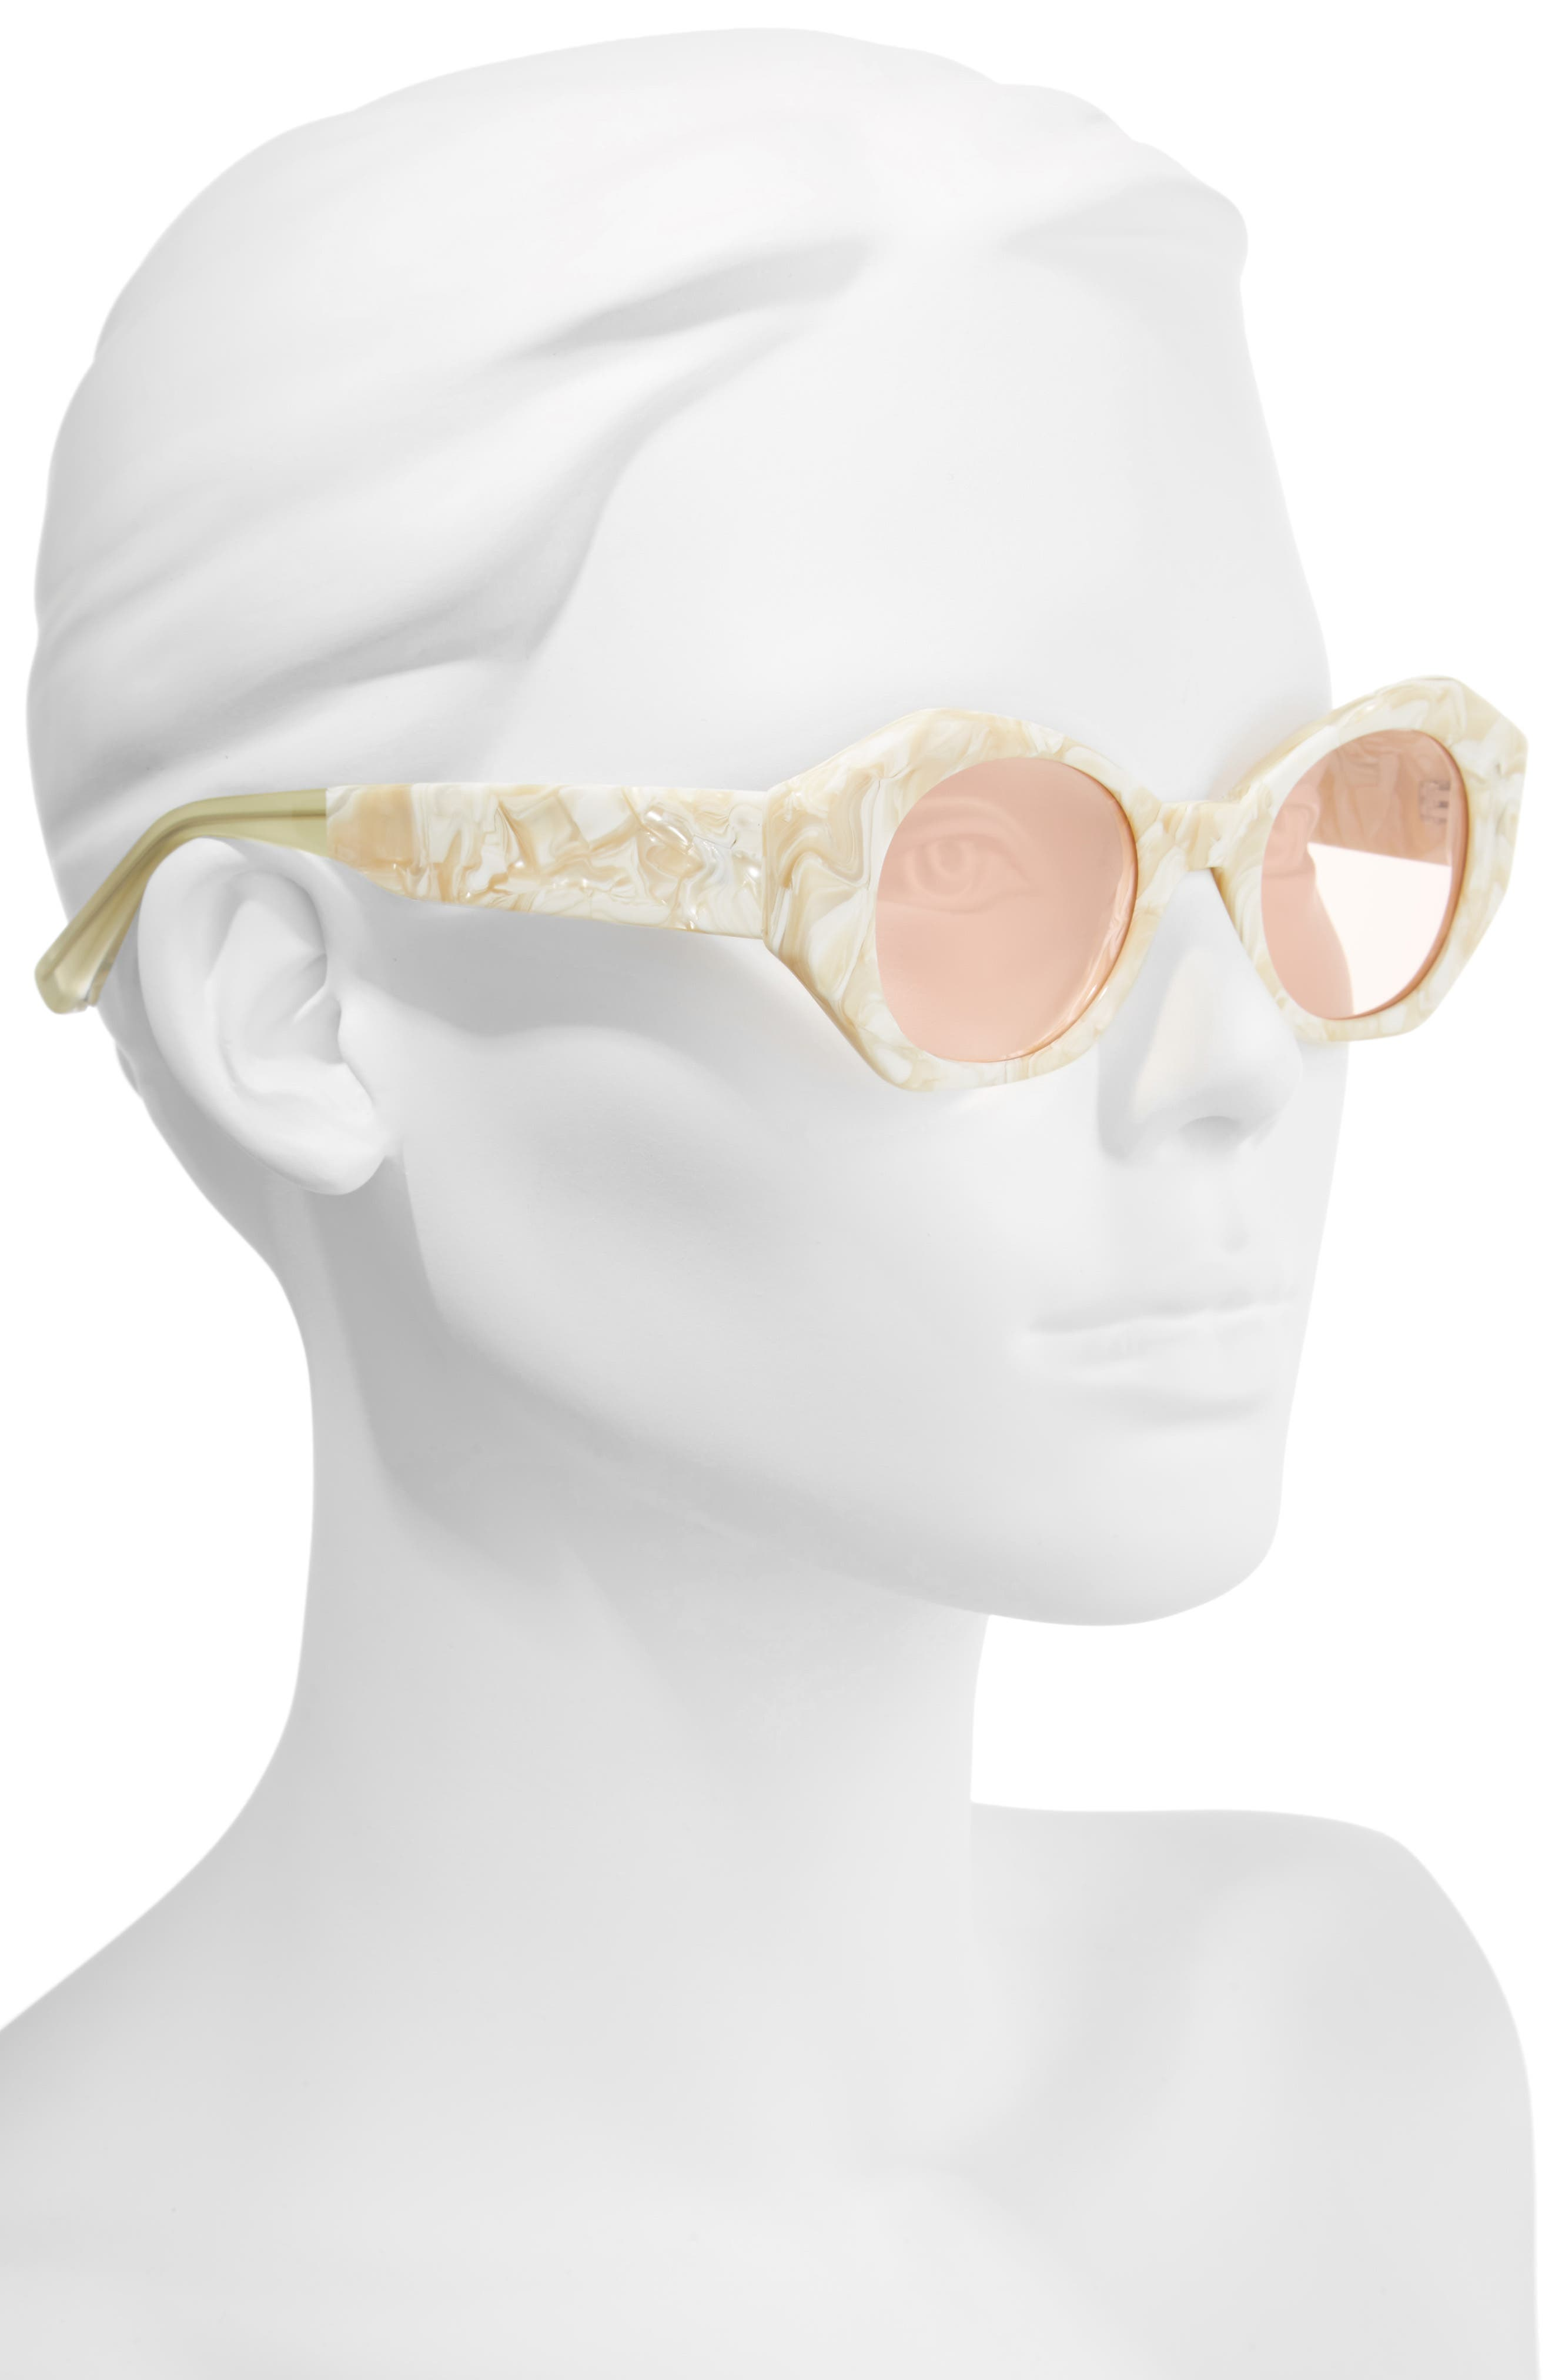 Huxley 46mm Geometric Sunglasses,                             Alternate thumbnail 2, color,                             White/ Pink